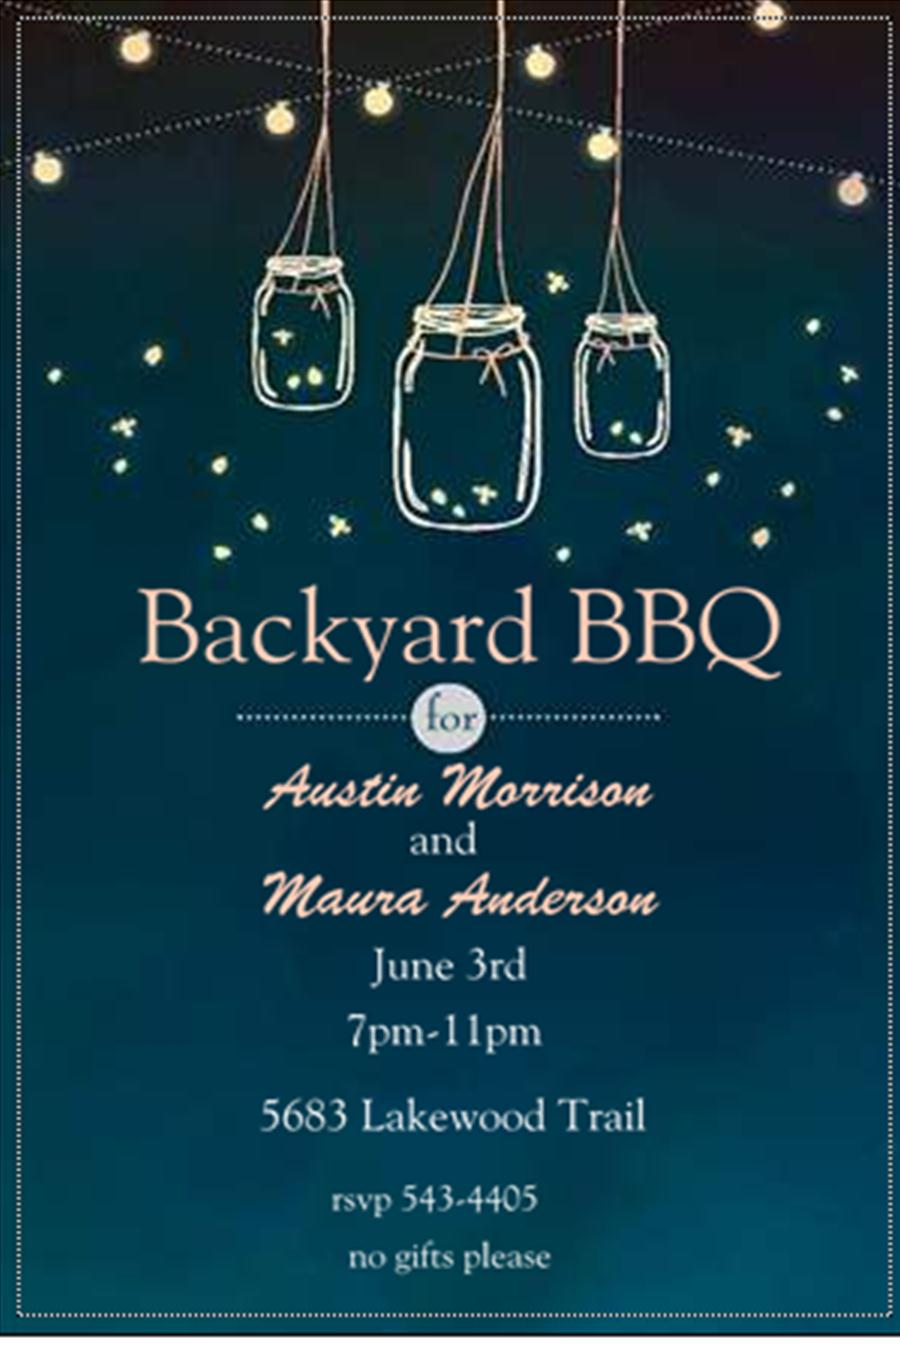 Barbecue Party Invitations BBQ NEW Selections Spring 2019